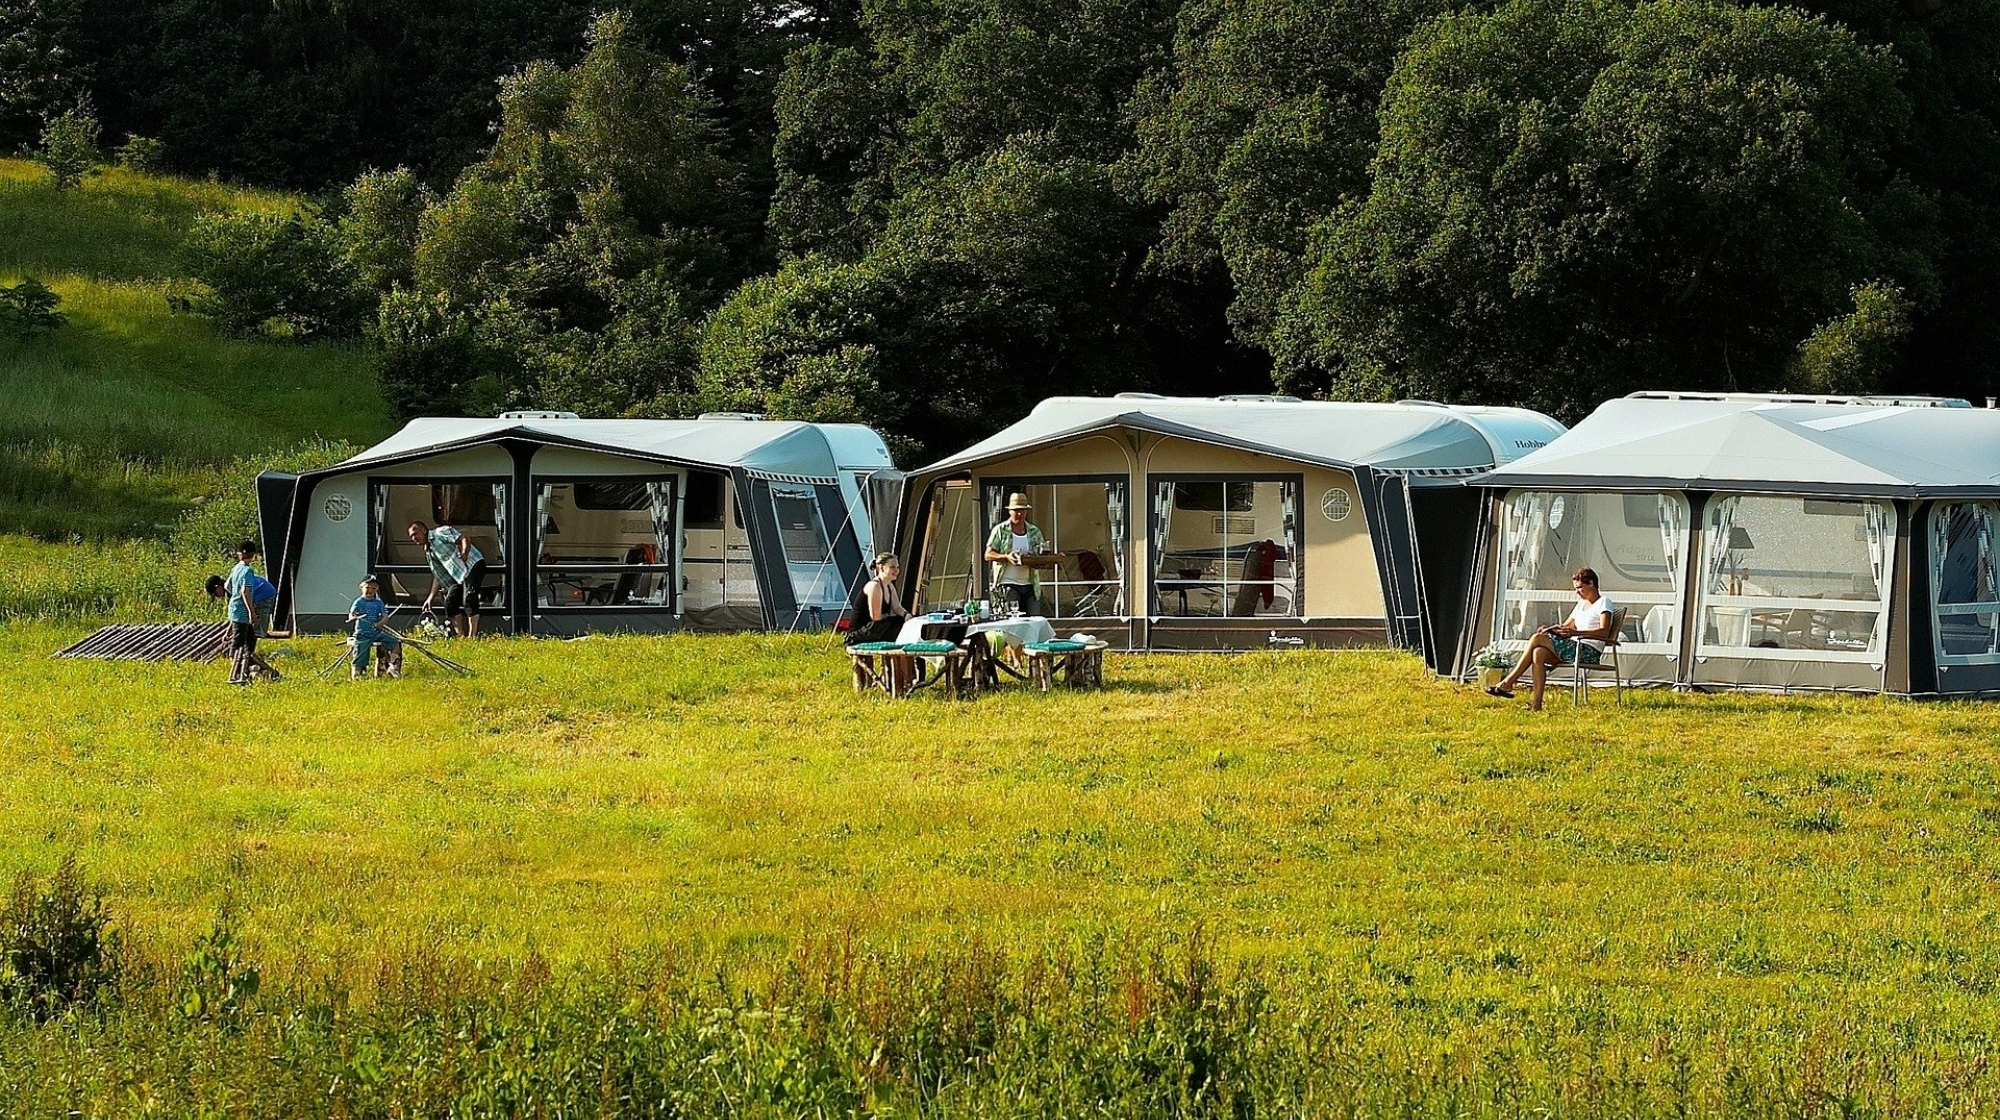 Naturnahes Camping wird immer beliebter